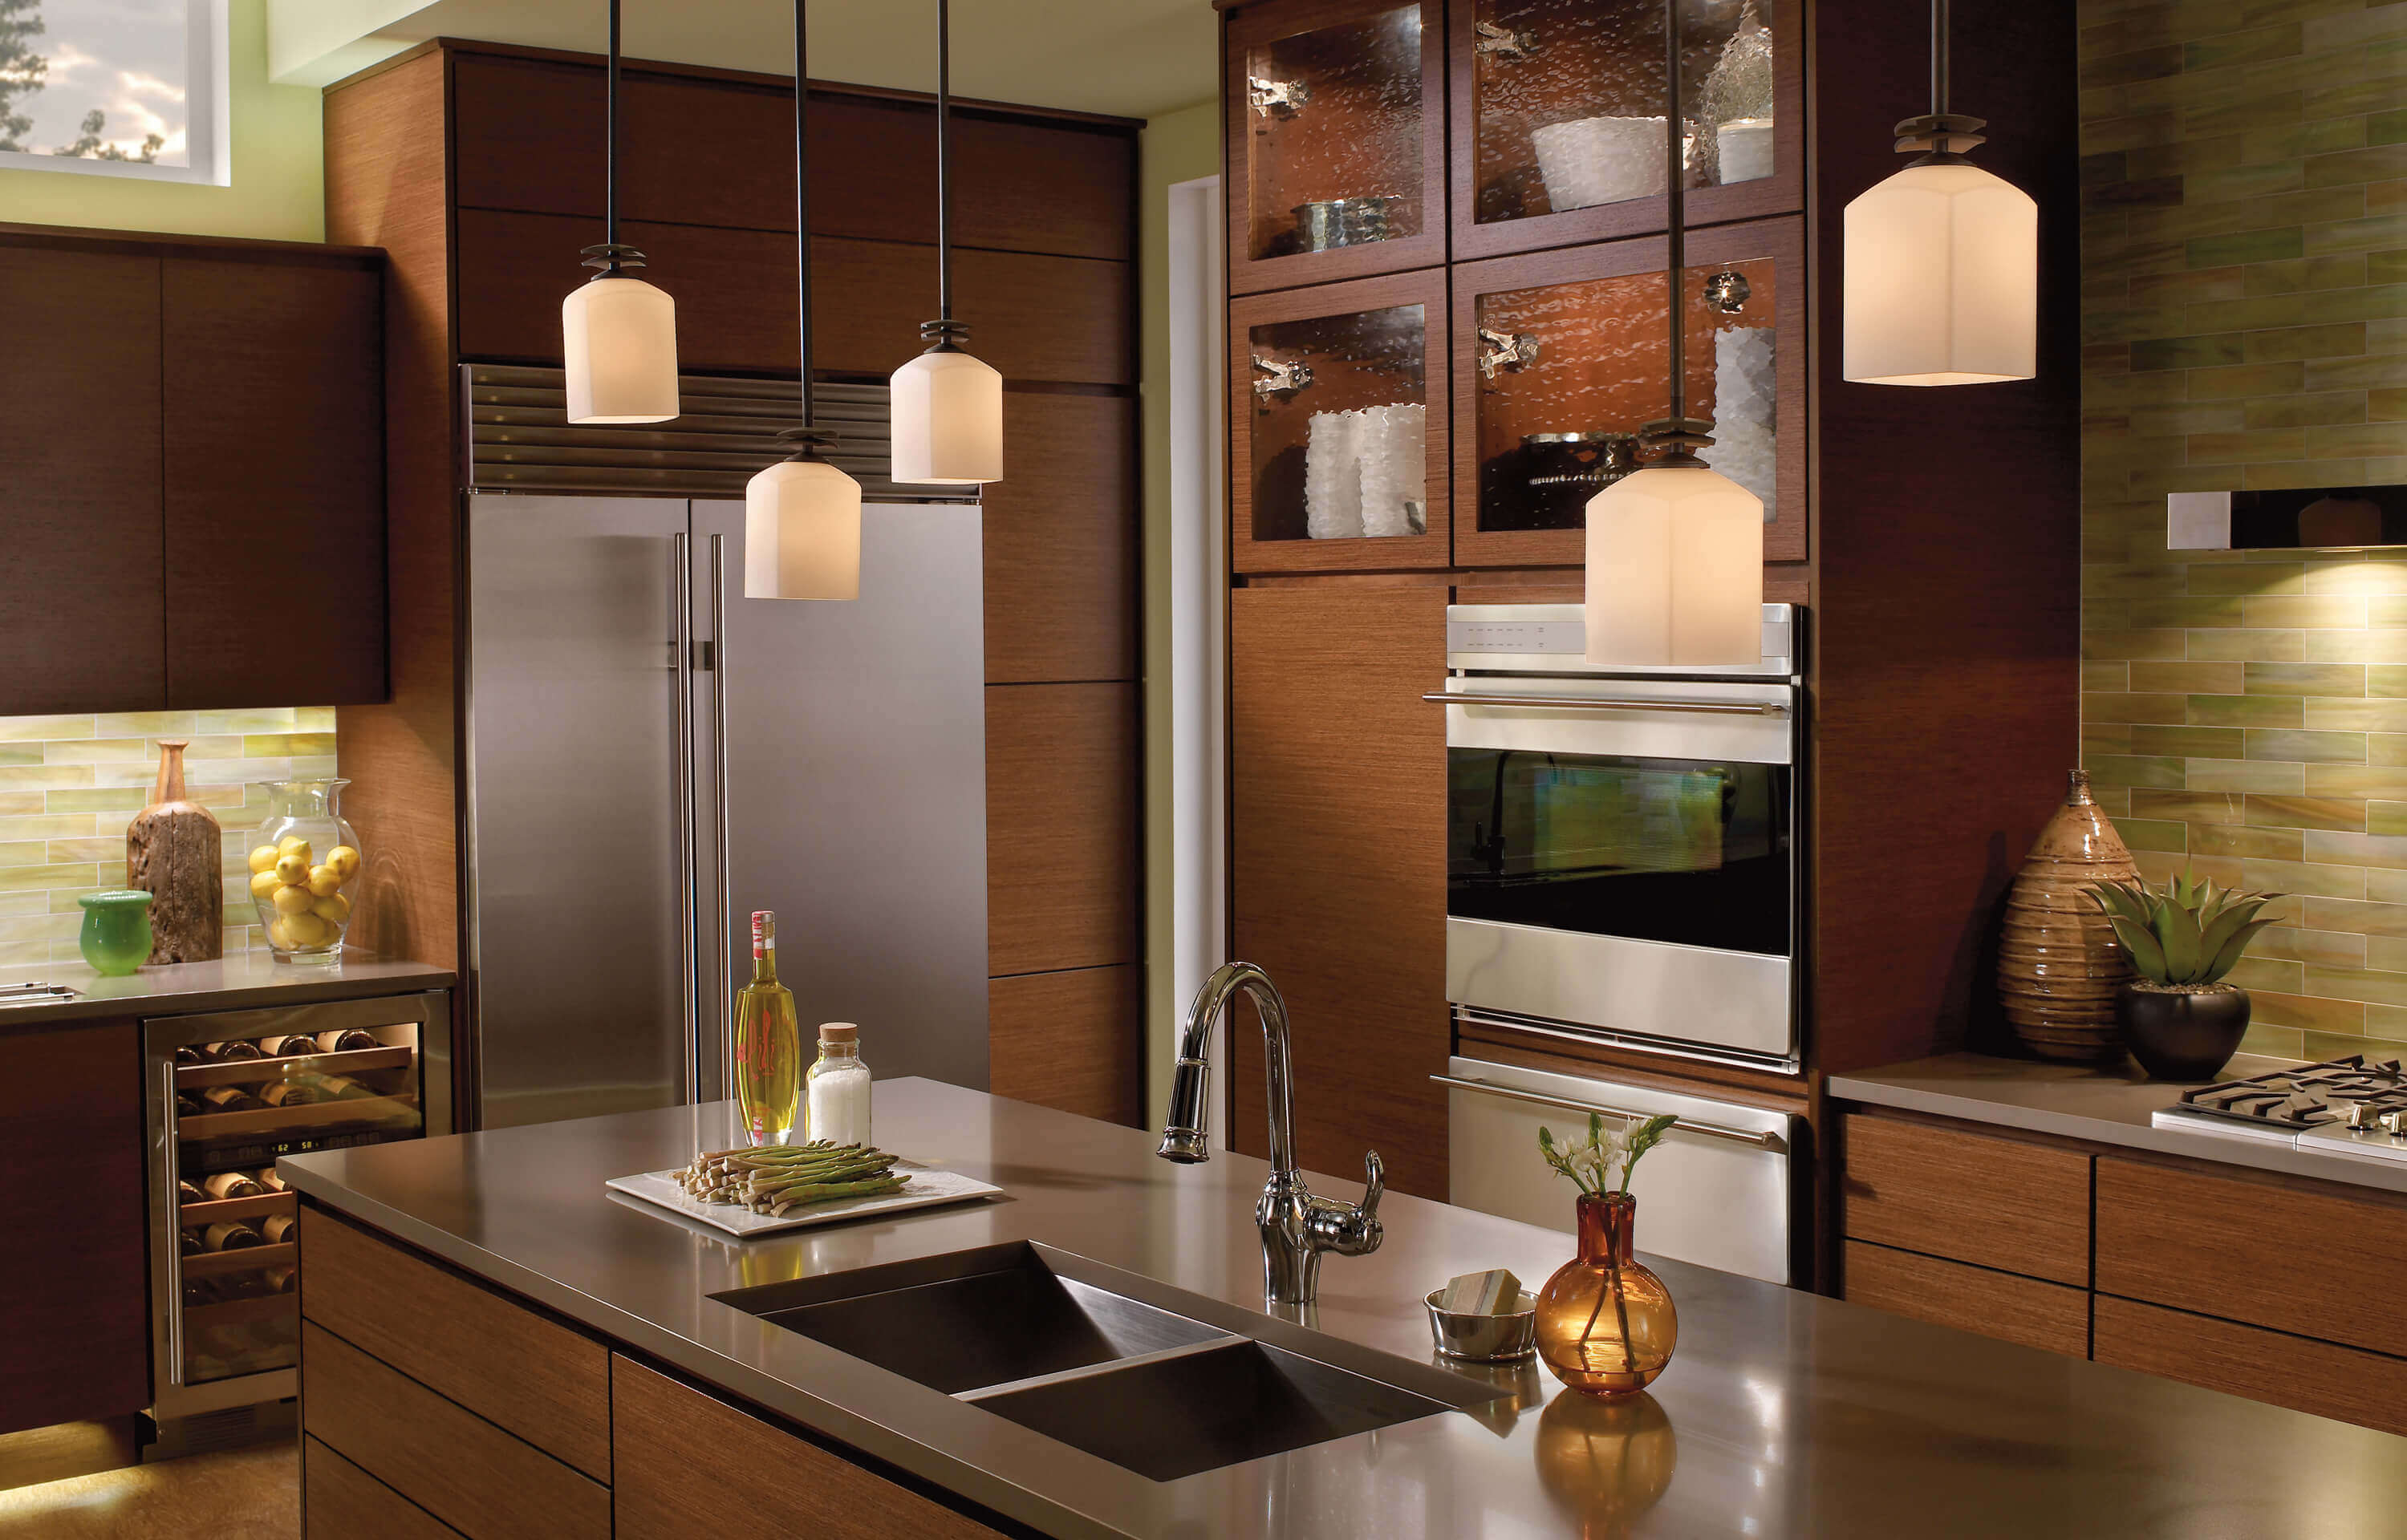 A small spaced kitchen design with a contemporary kitchen sinks undermount, flat–panel cabinets, dark wood cabinets, stainless steel countertops, stainless steel appliances, and an island with pedantic light, brick backsplash